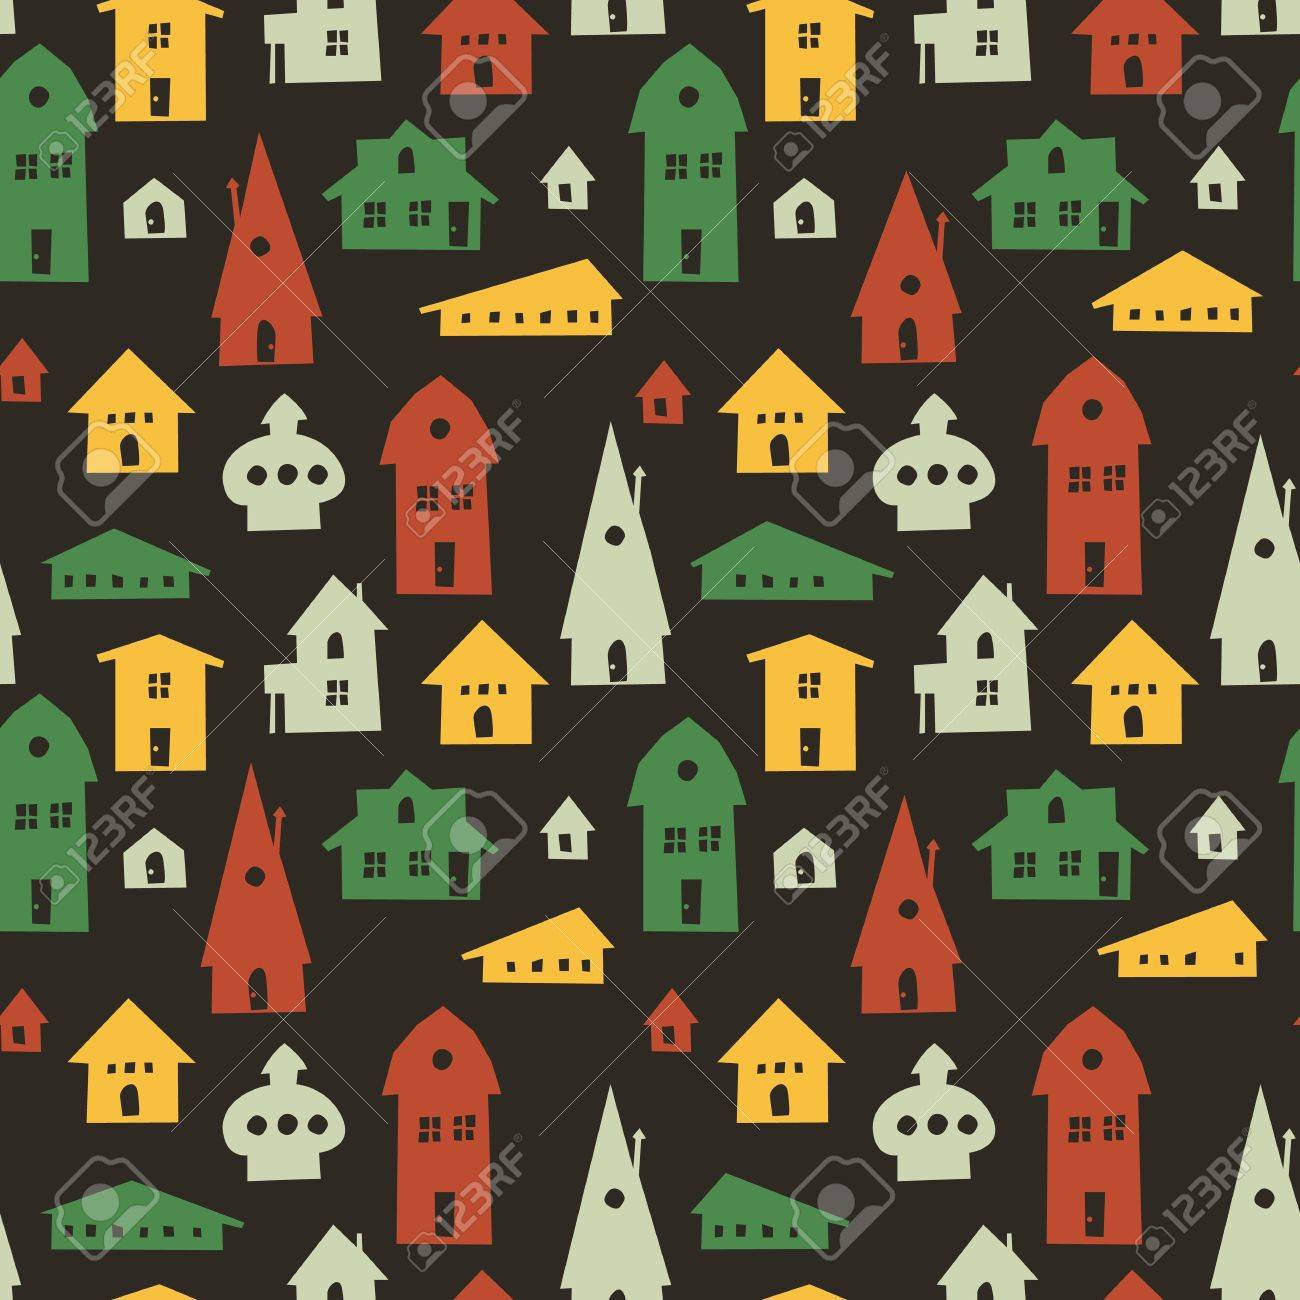 Different houses seamless pattern - 19185696